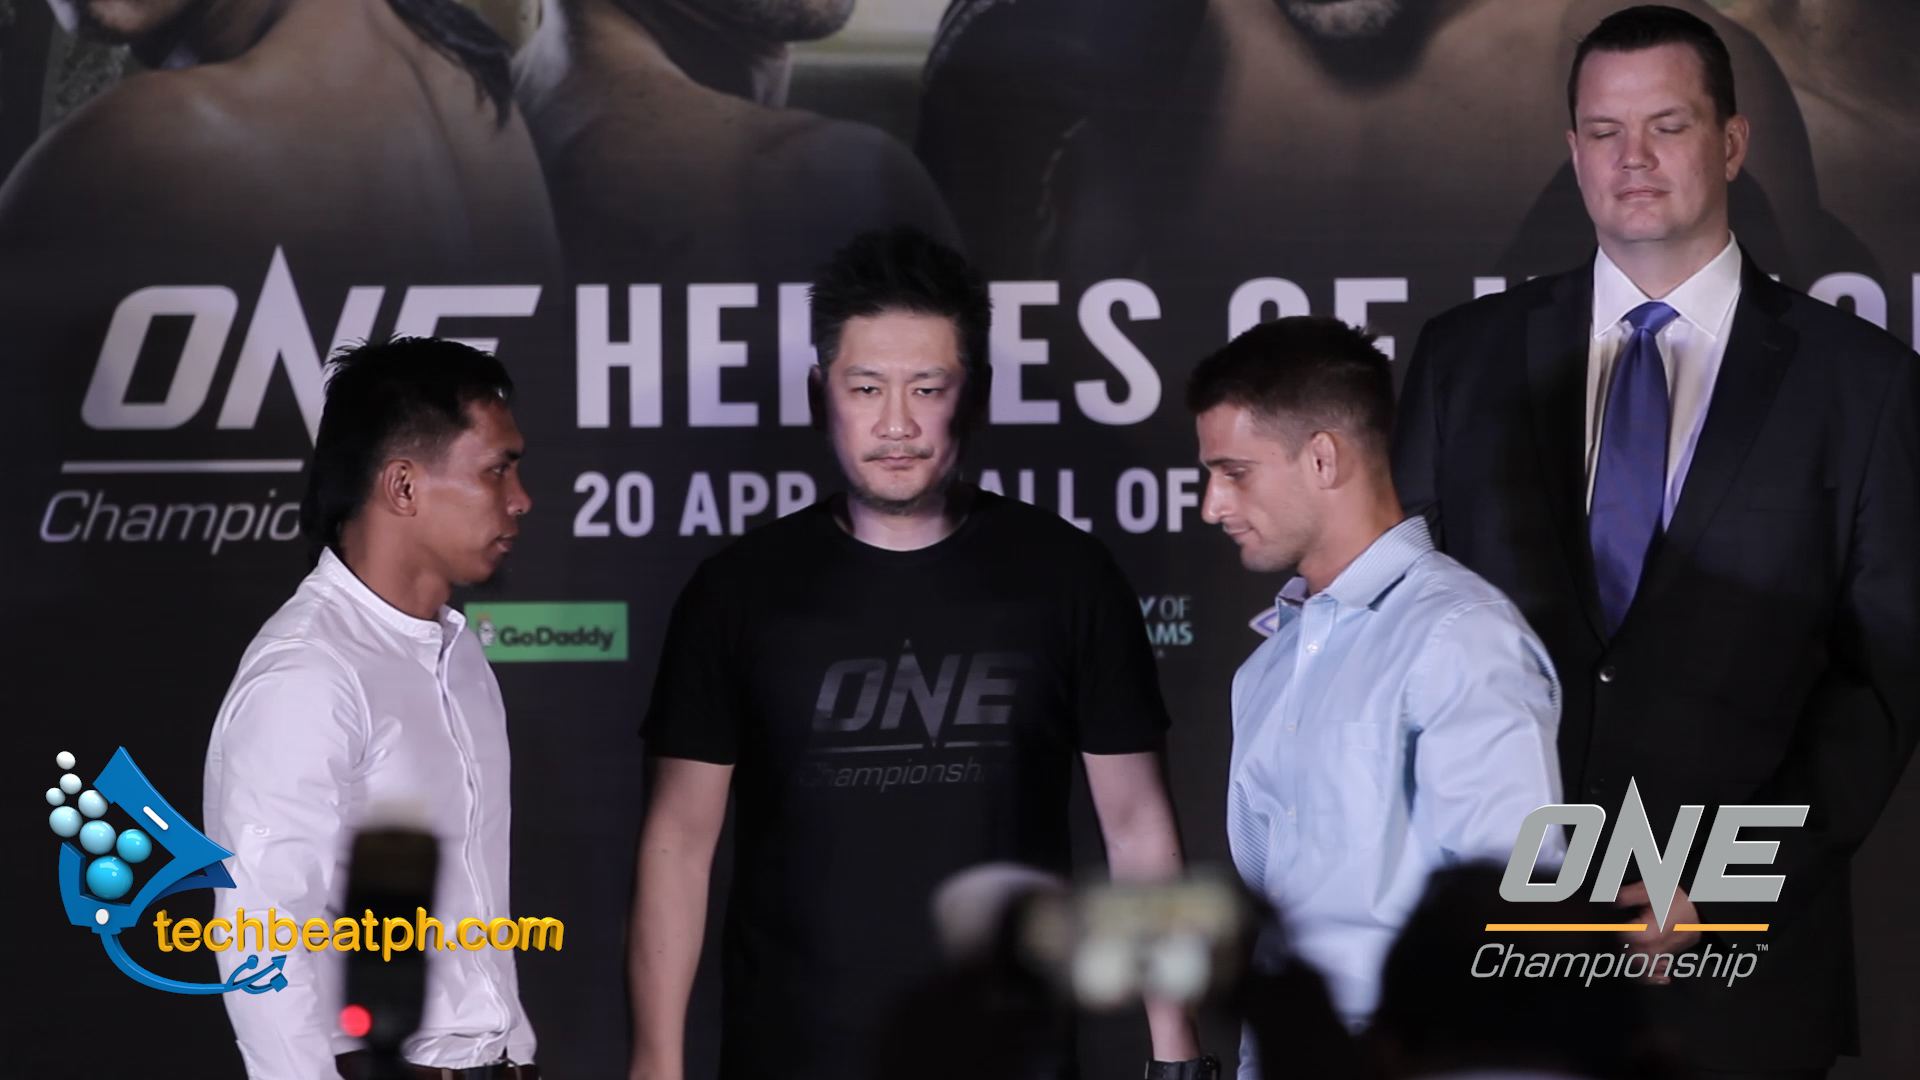 ONE Championship HEROES OF HONOR